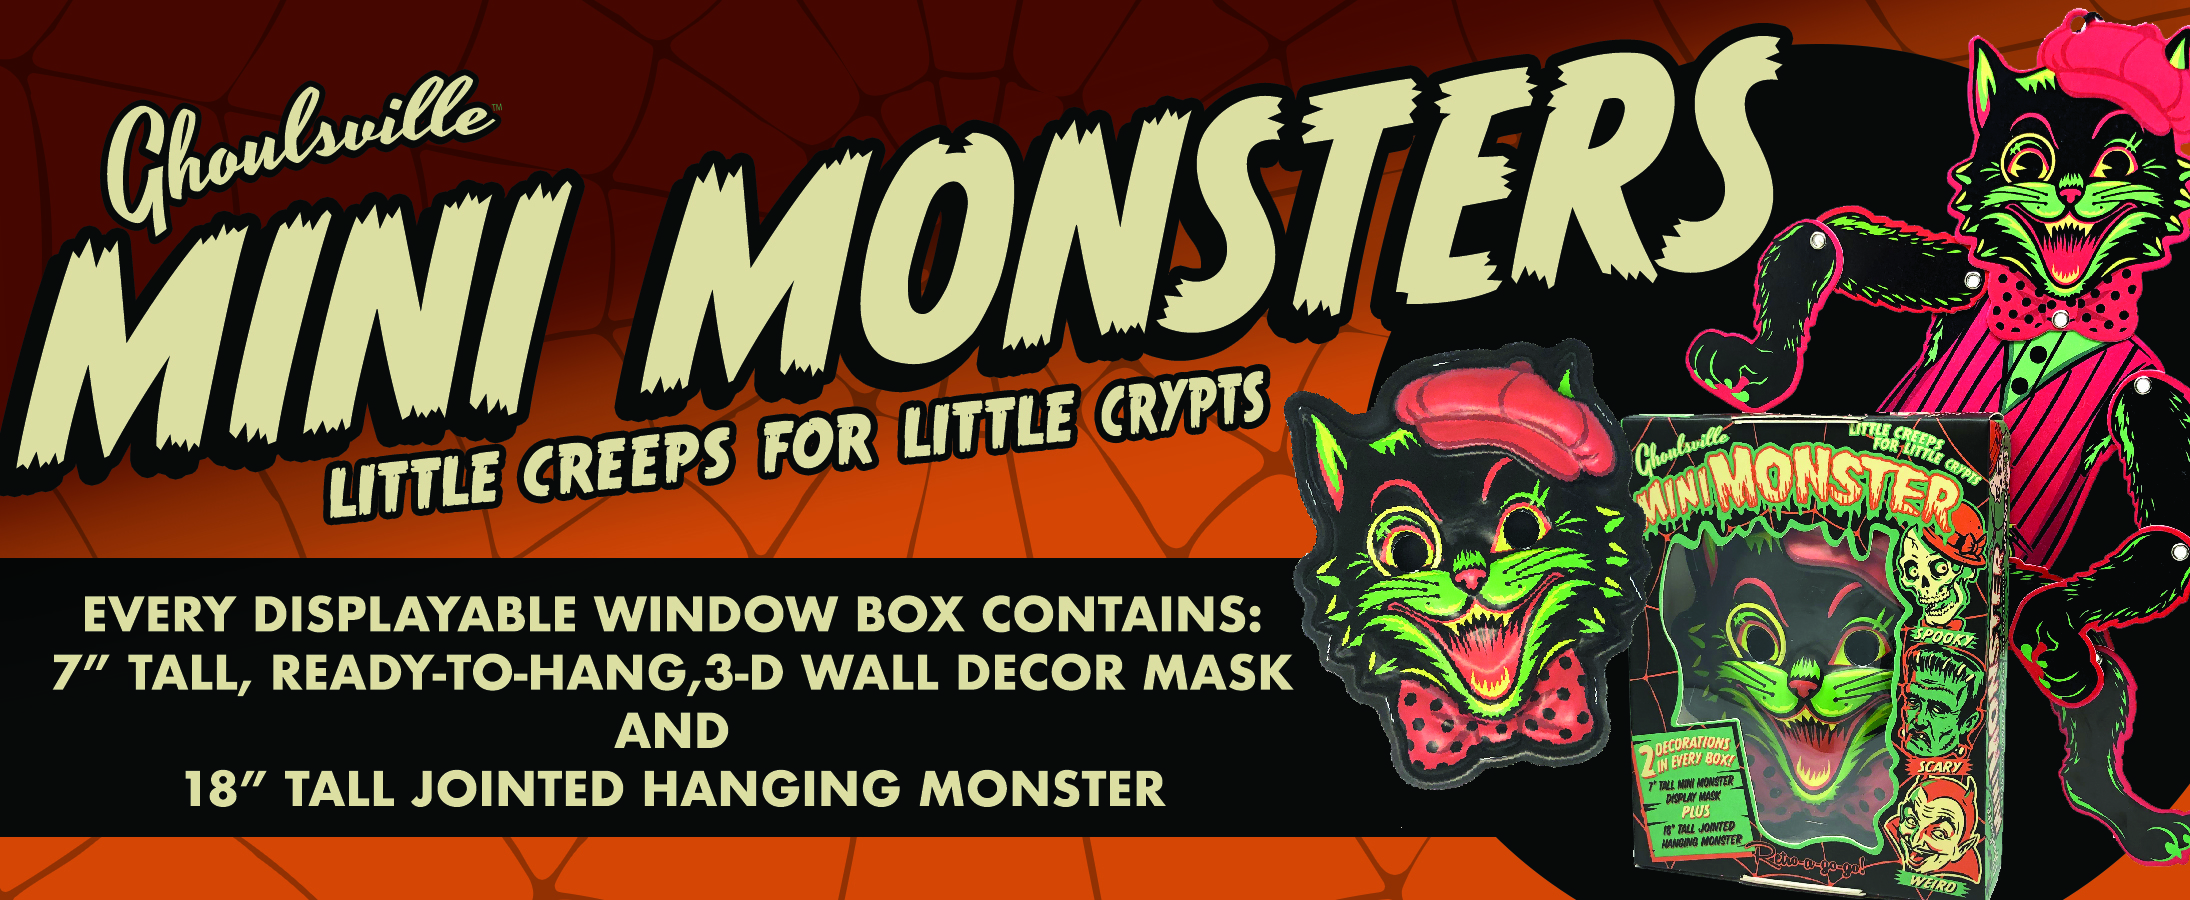 mini-monsters-header.jpg